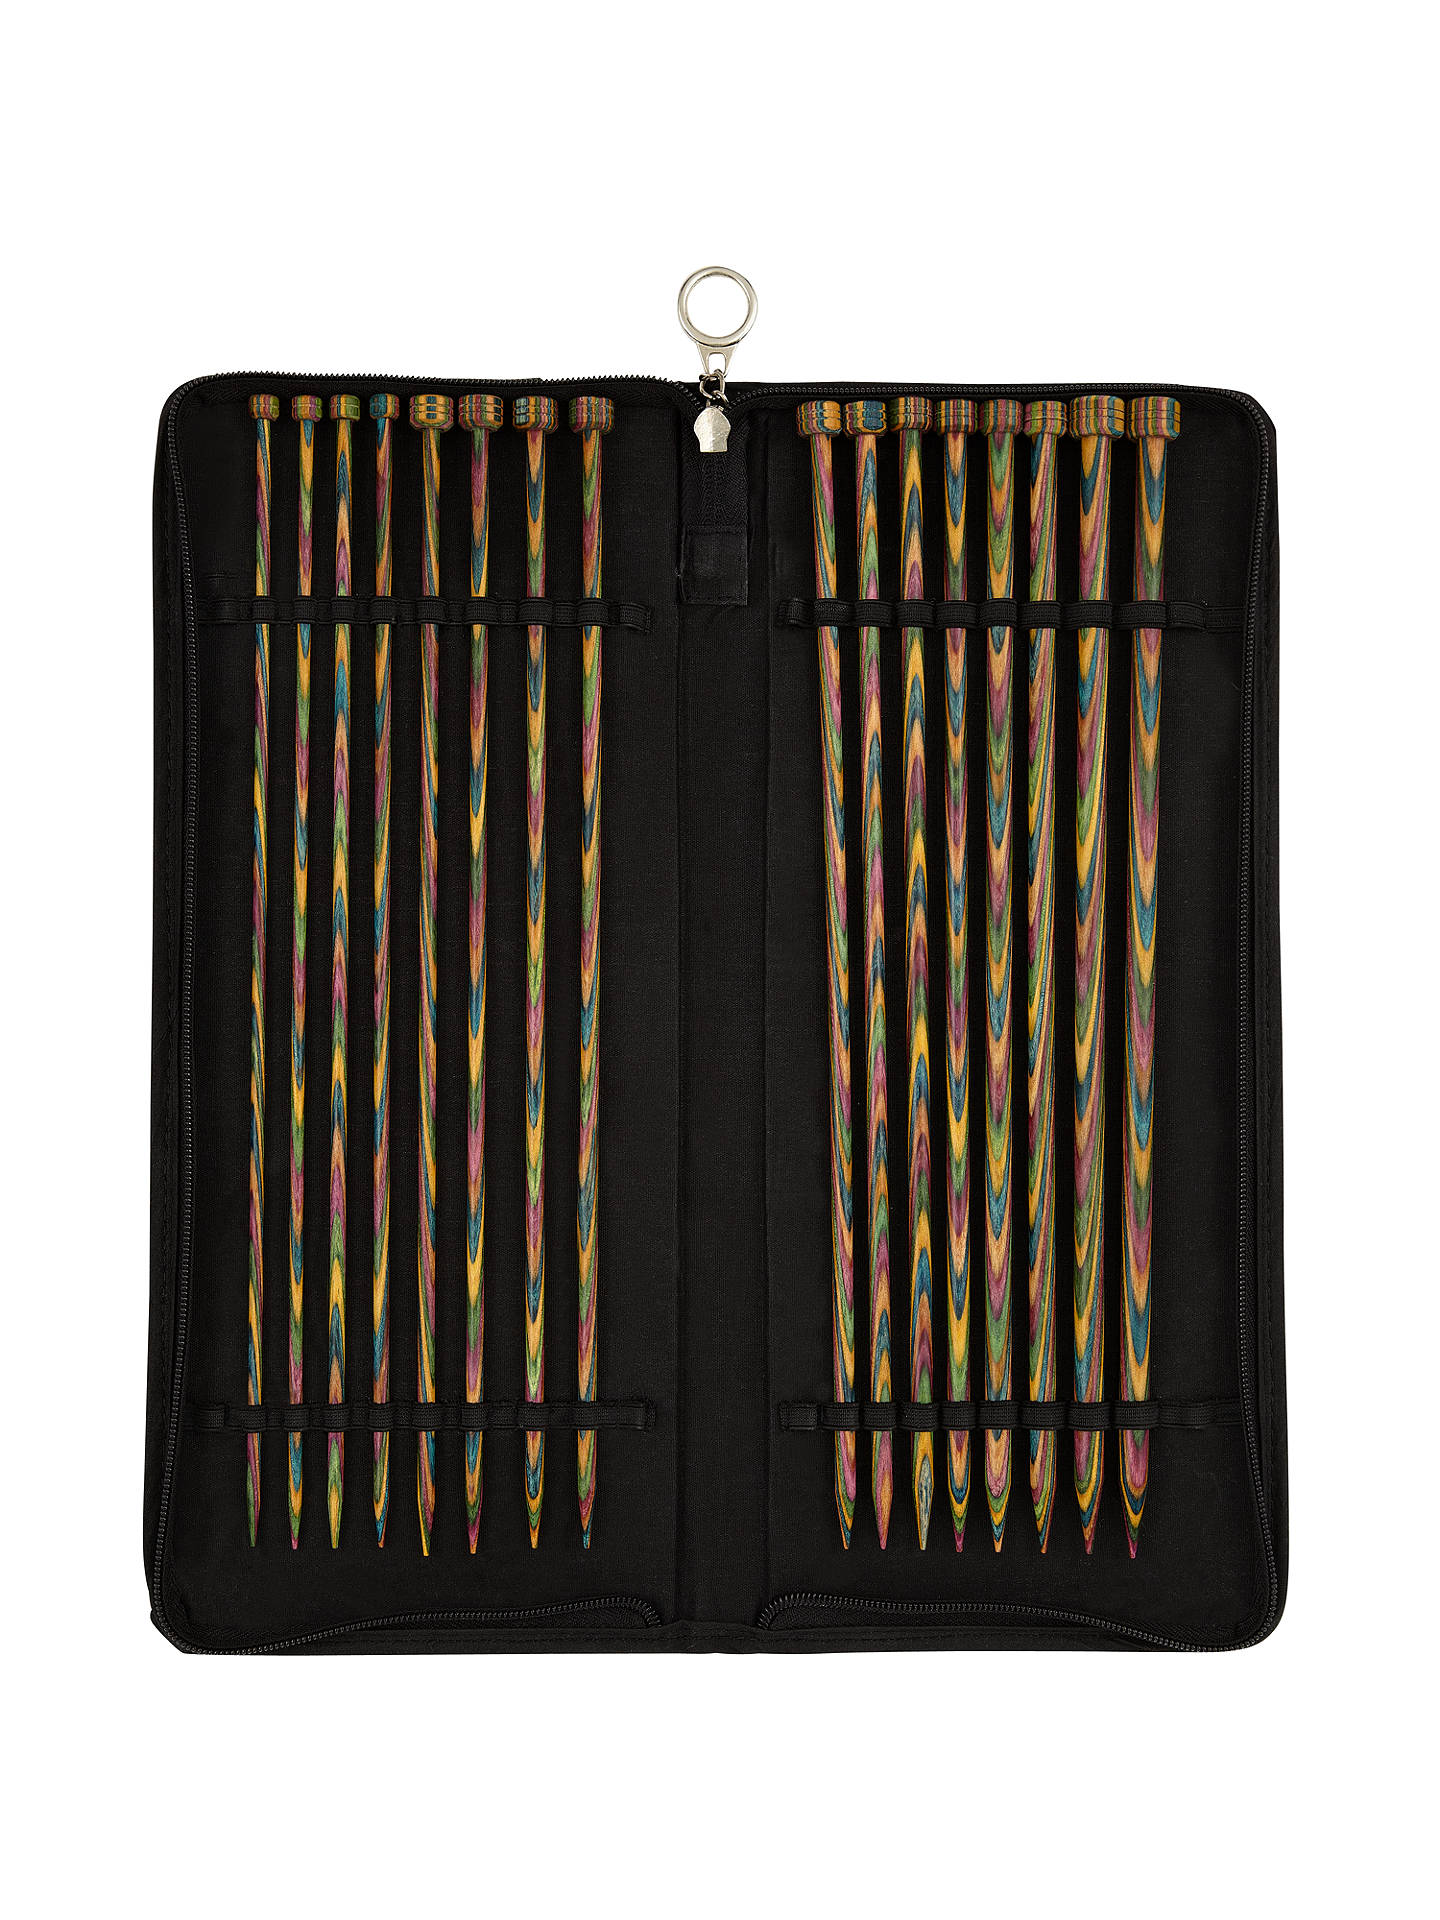 BuyKnit Pro Symfonie 30cm Knitting Needle Set, Set of 16 Online at johnlewis.com